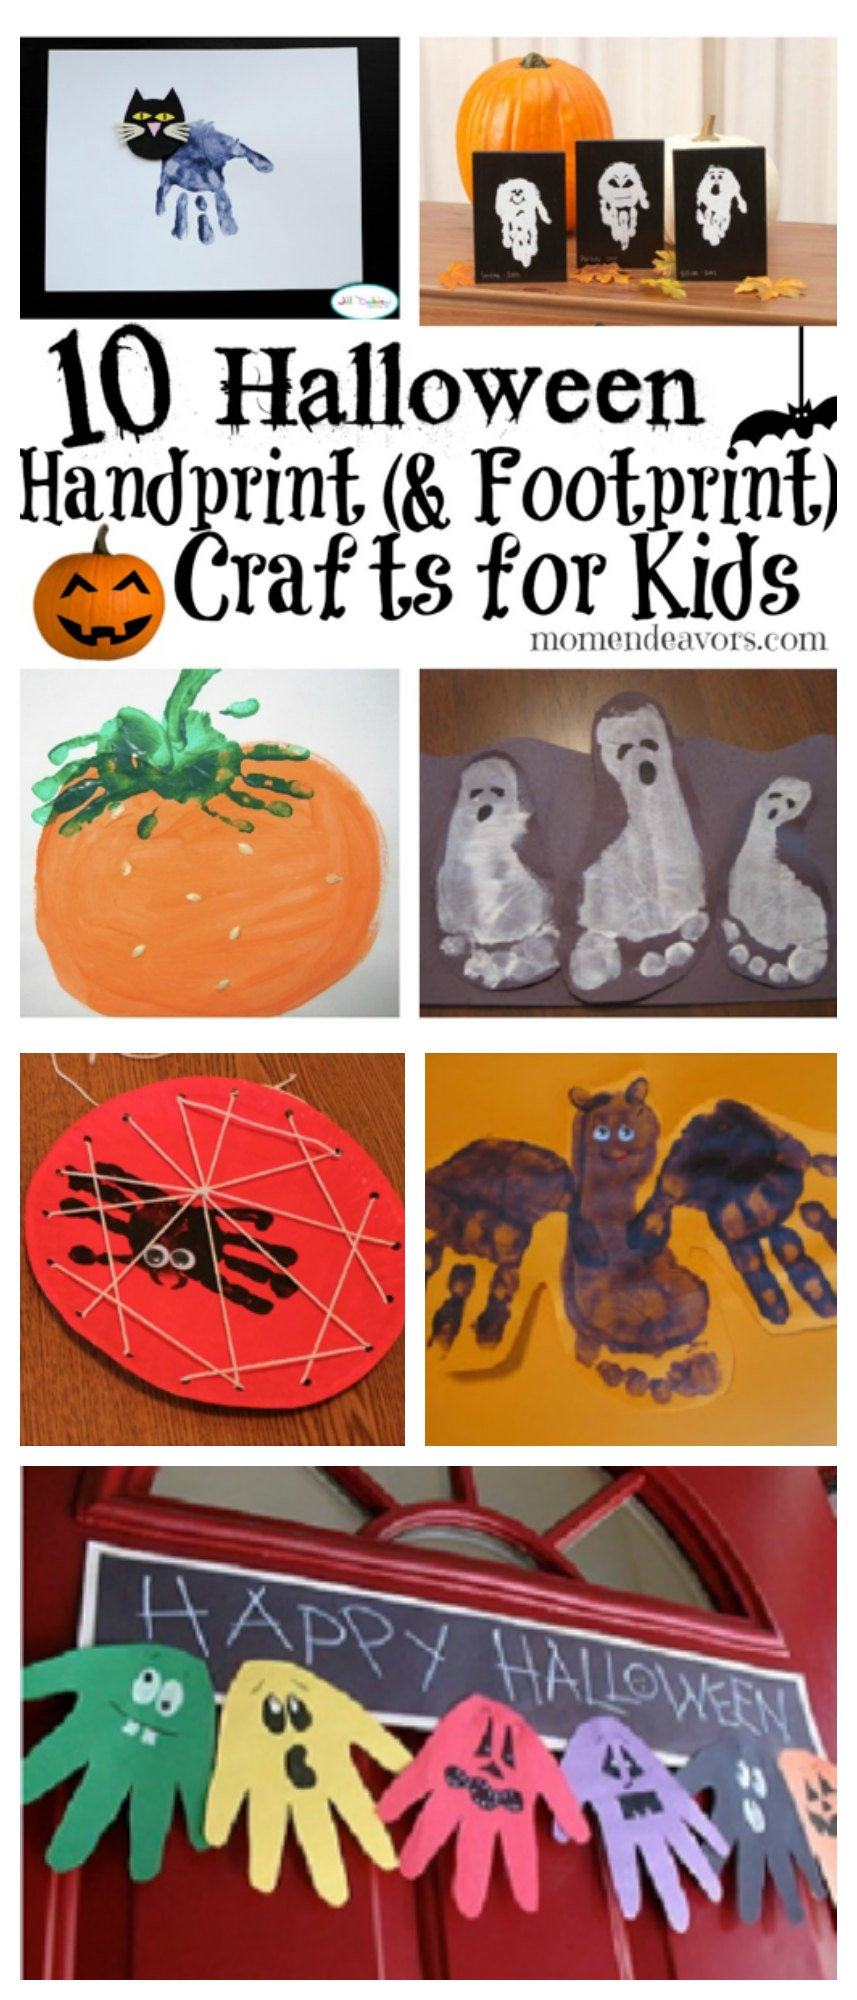 Halloween Handprint & Footprint Crafts for Kids